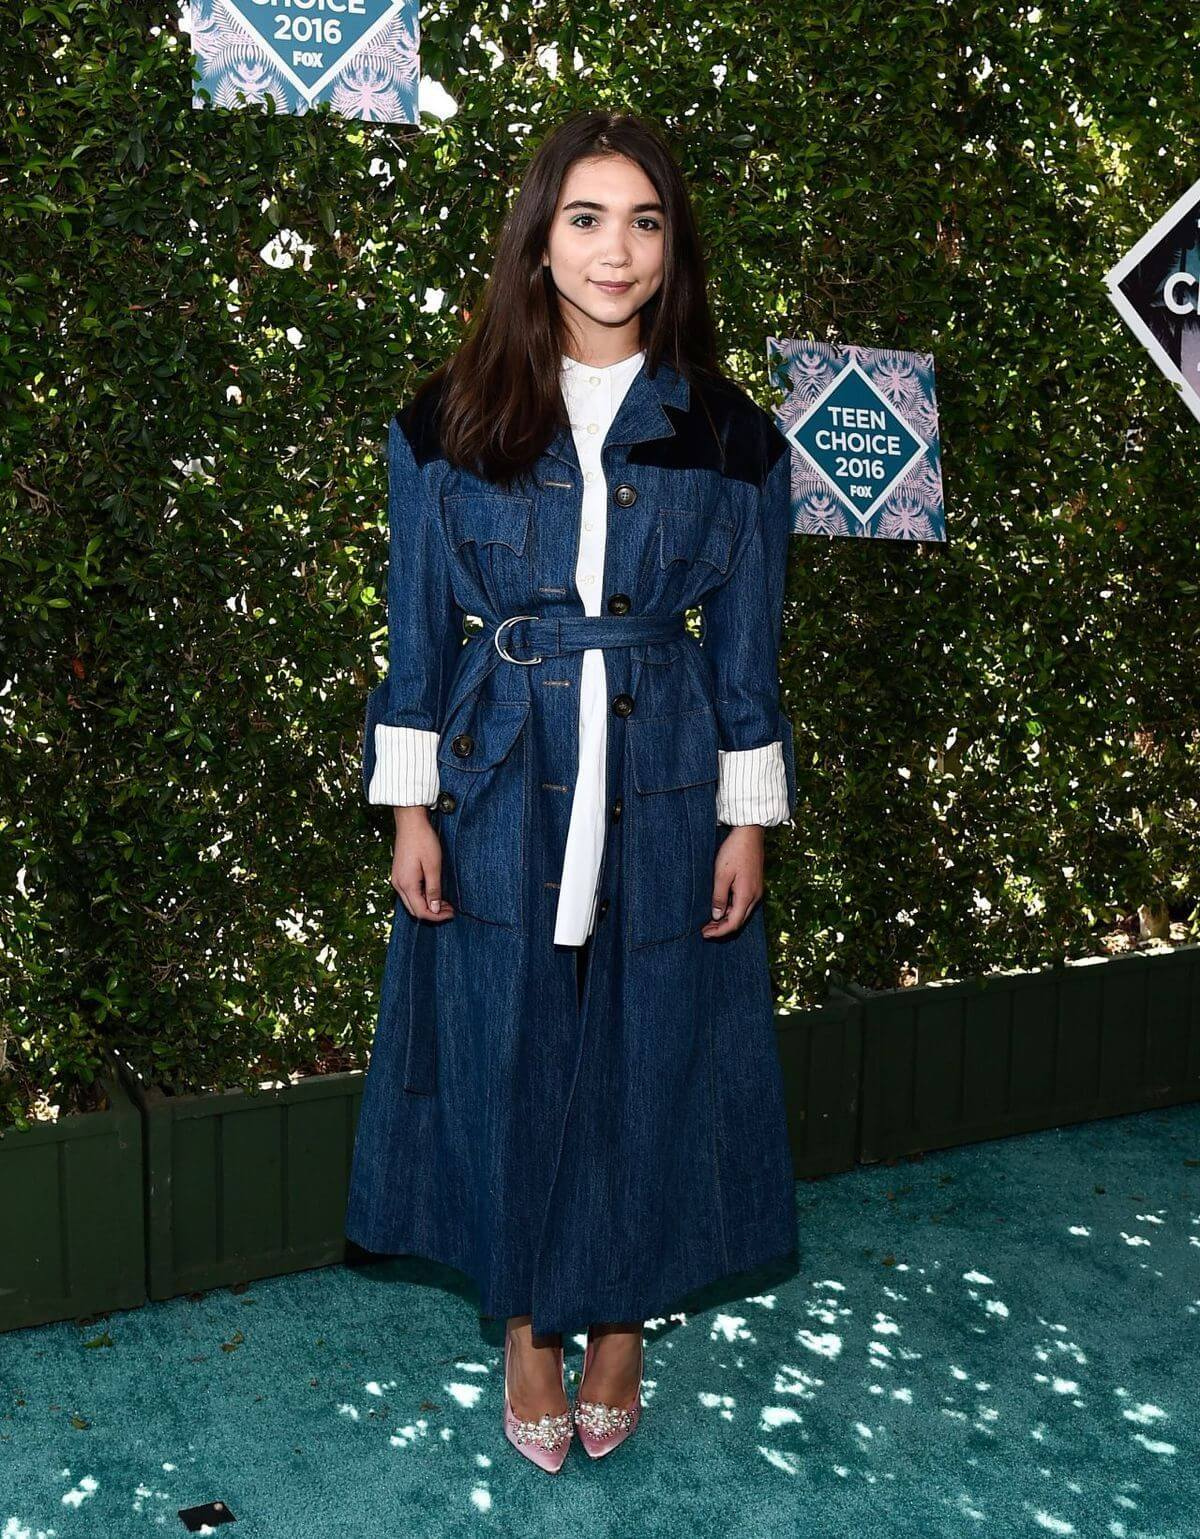 Rowan Blanchard awesome picture (2)